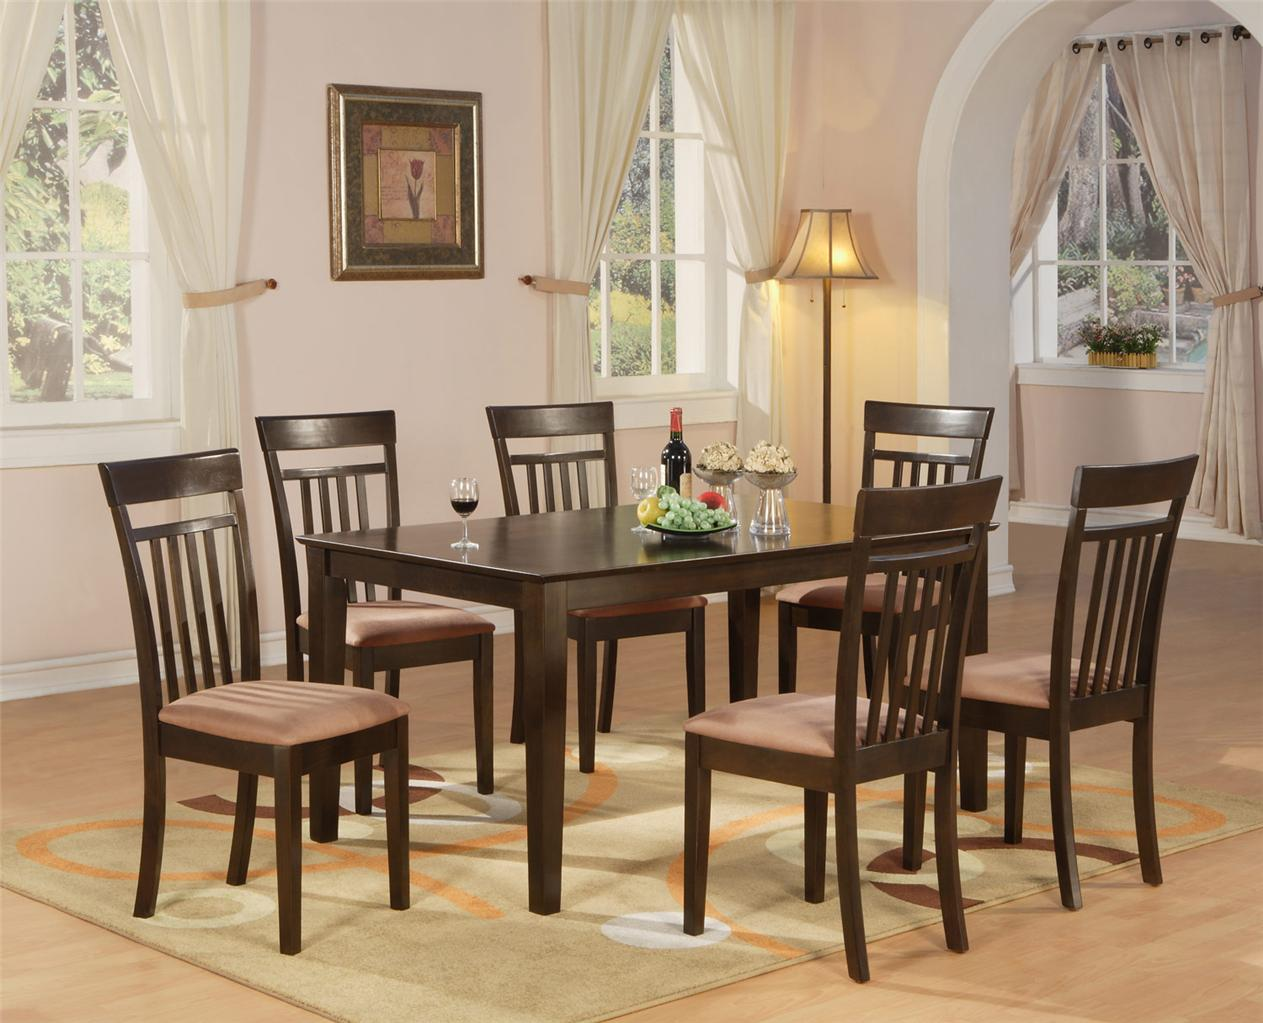 7 pc dining room dinette kitchen set table and 6 chairs ebay for Kitchen set table and chairs